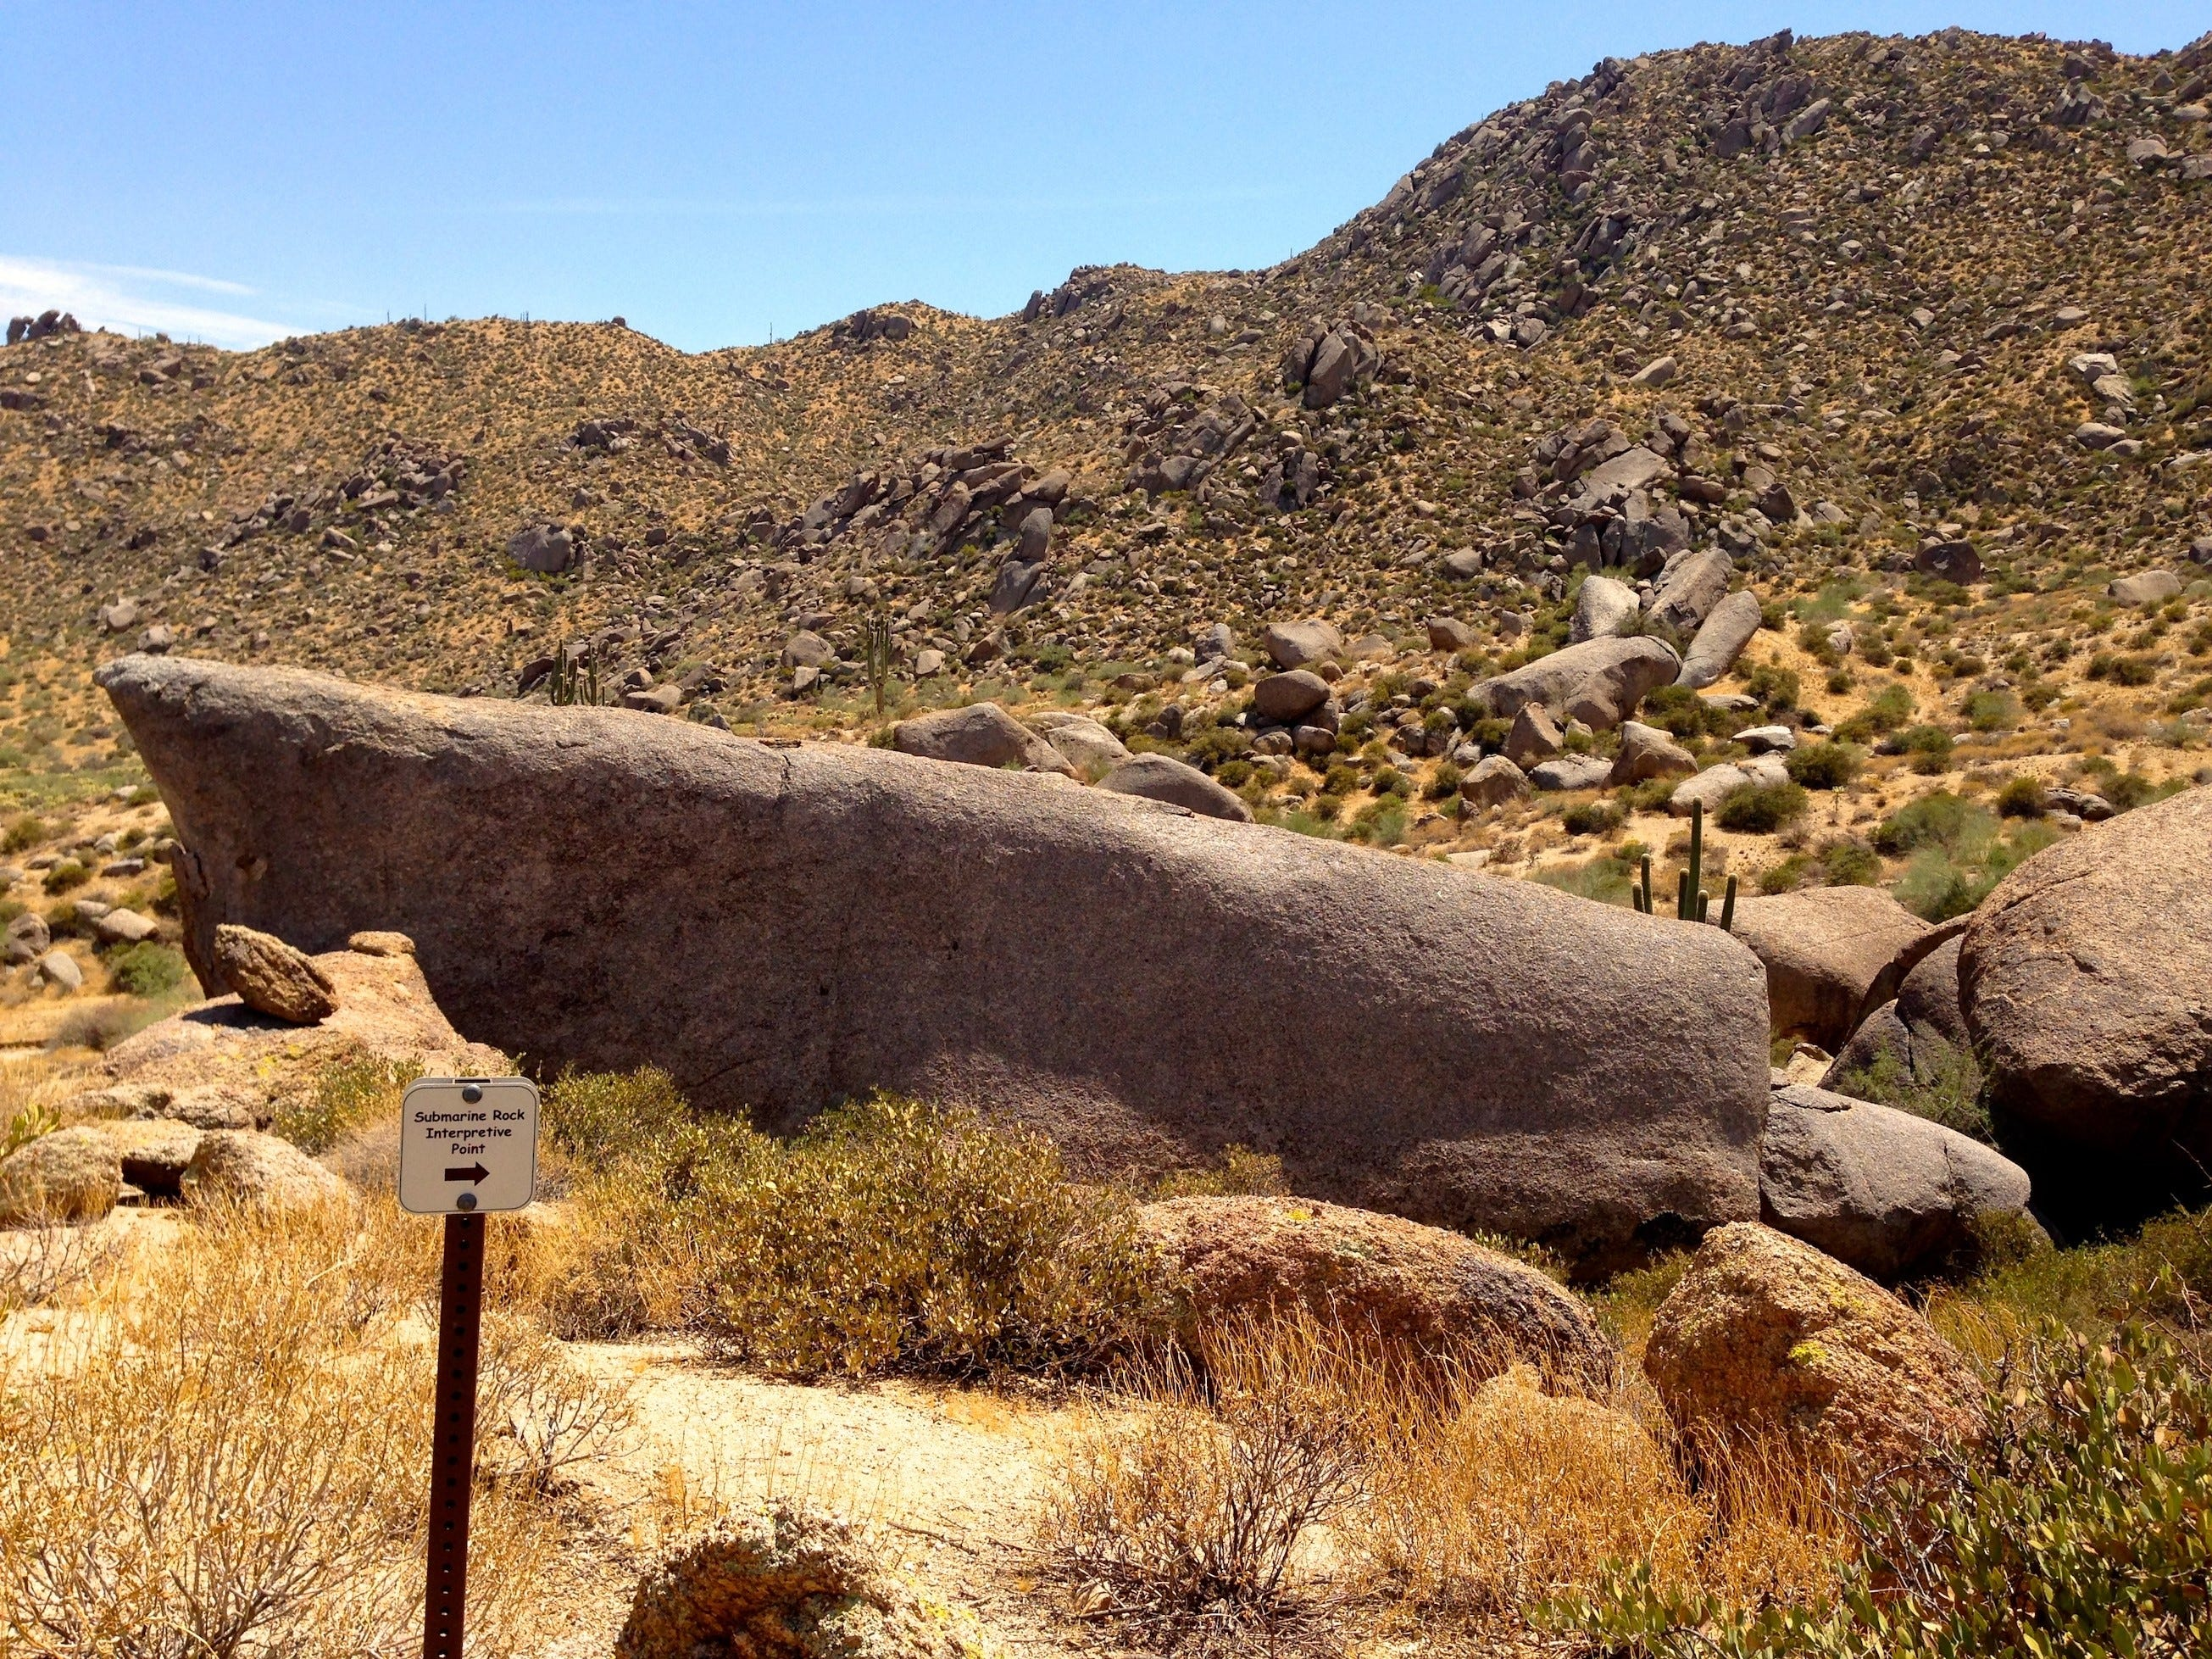 At the end of the Marcus Landslide Trail, a short loop weaves through the jumbled boulders of the slide mass 100 feet above the desert floor.